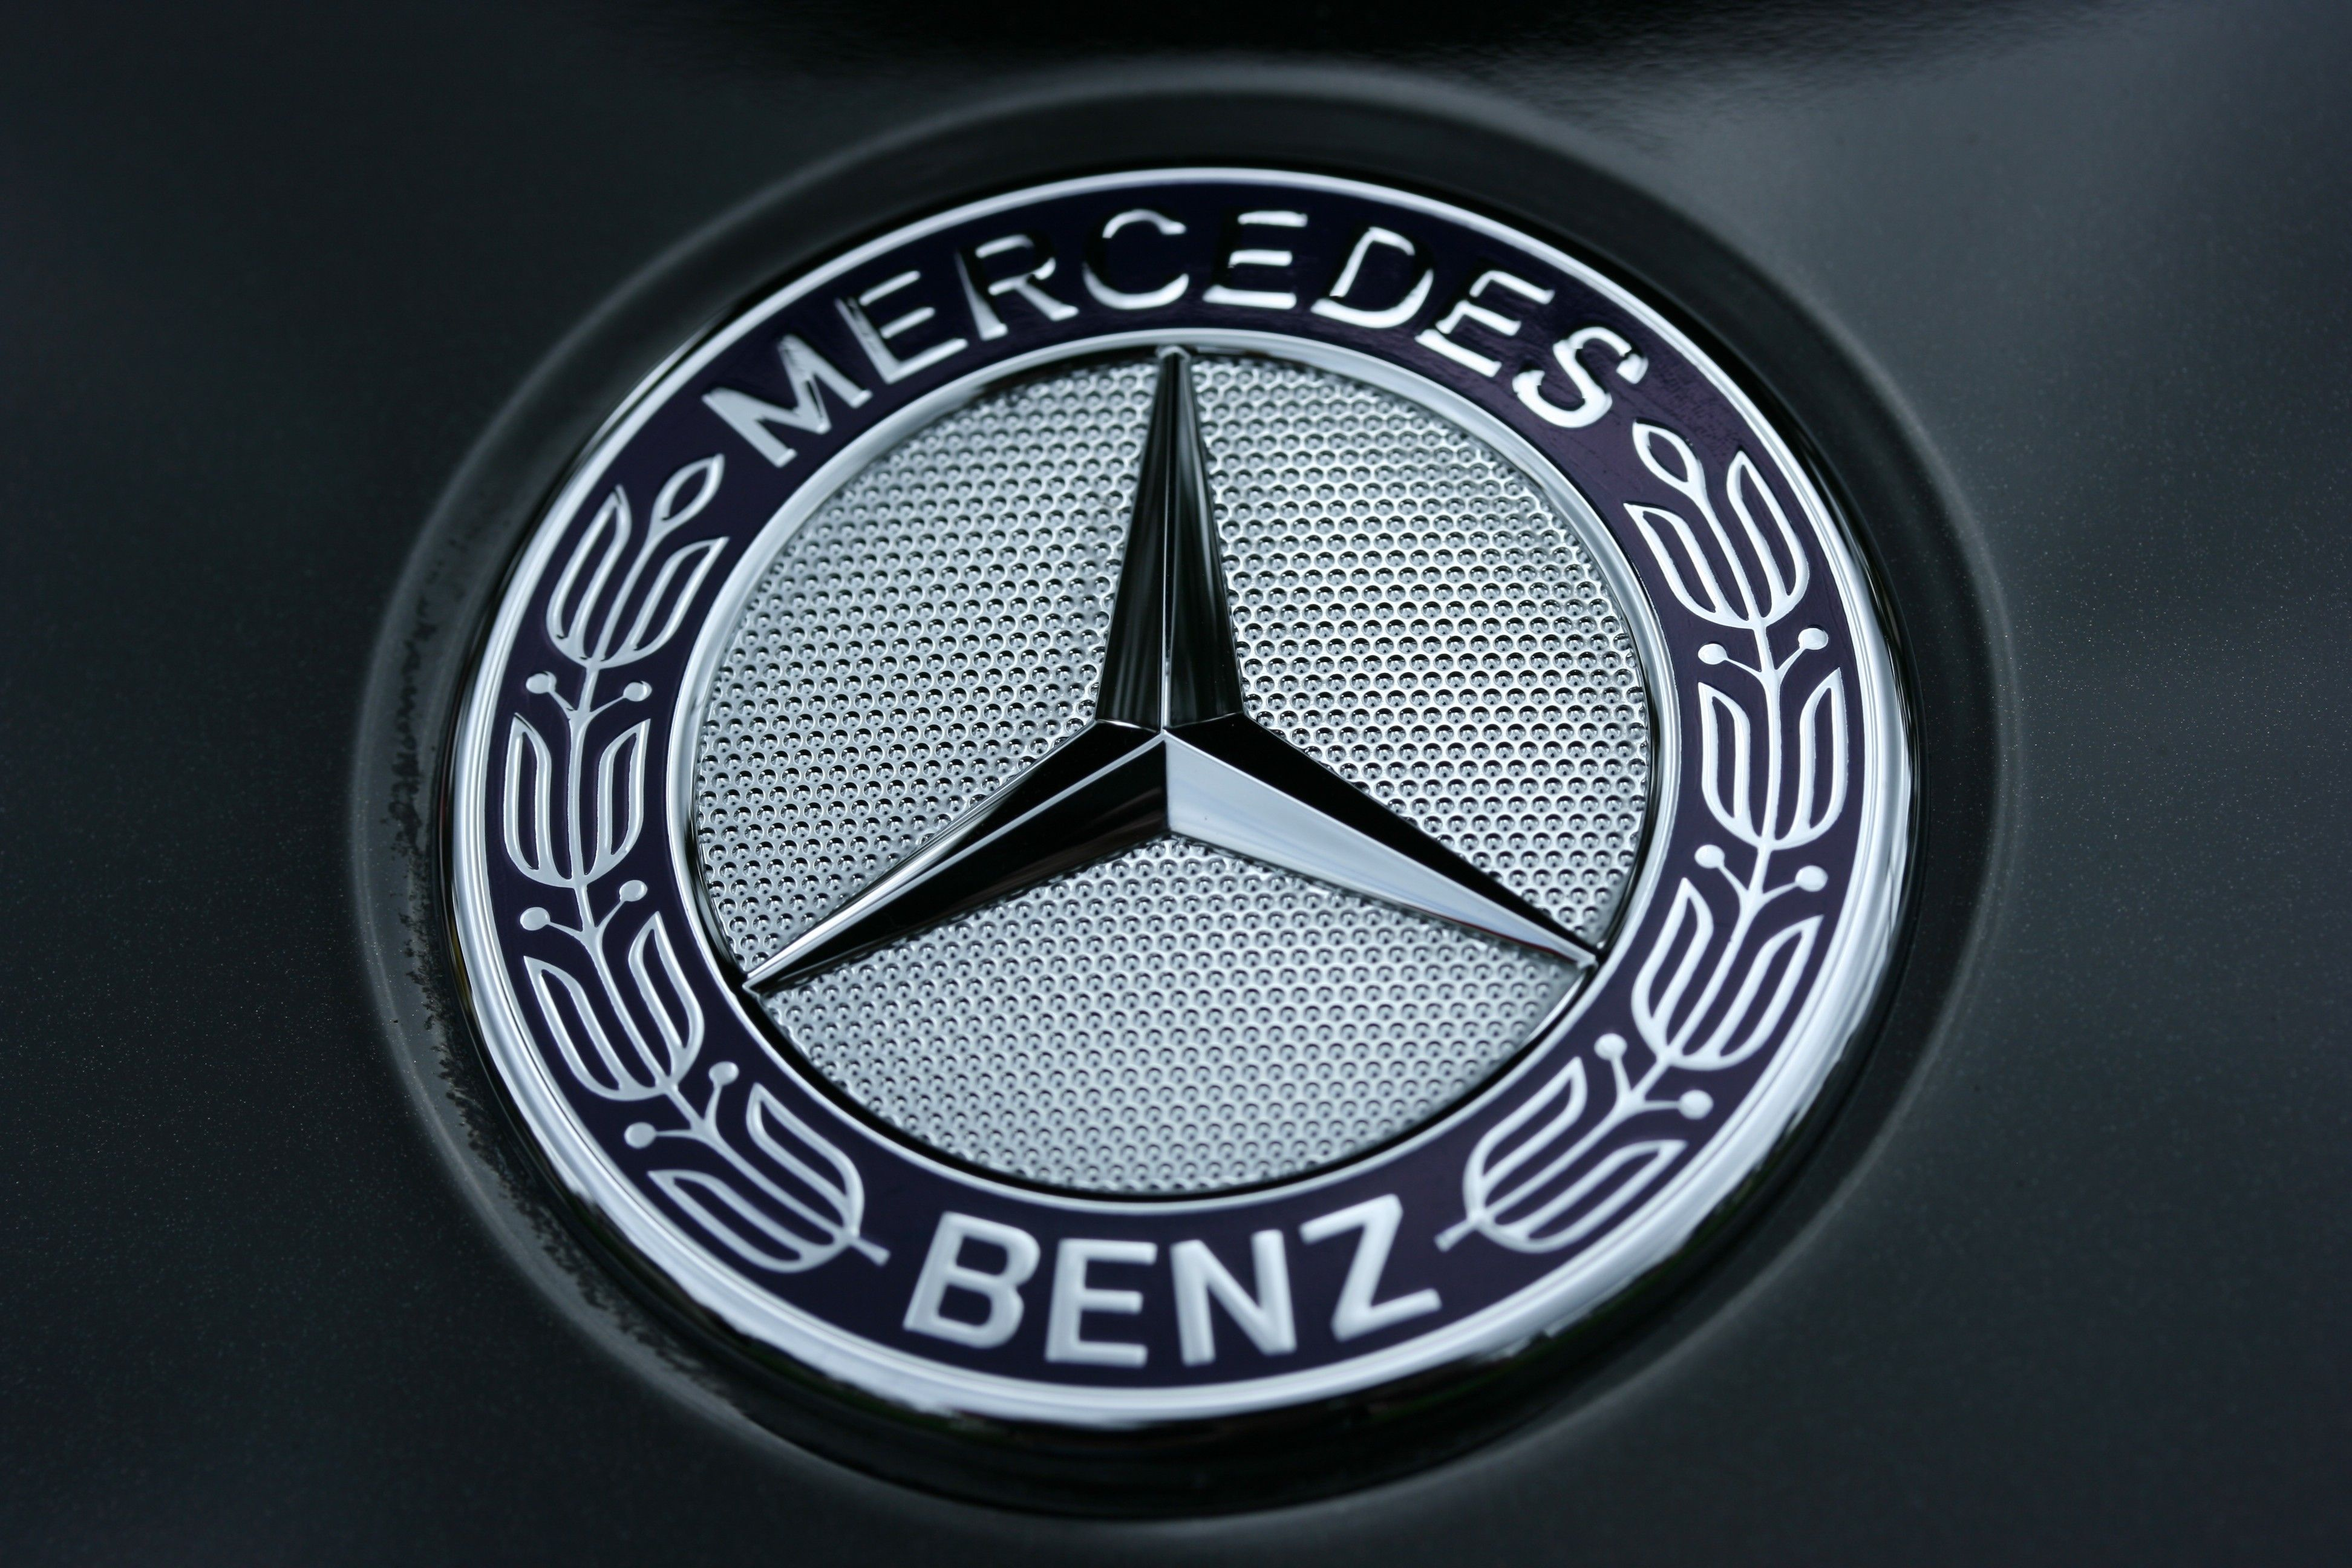 Mercedes benz logo hd cars pinterest mercedes benz benz and cars mercedes benz logo hd biocorpaavc Image collections